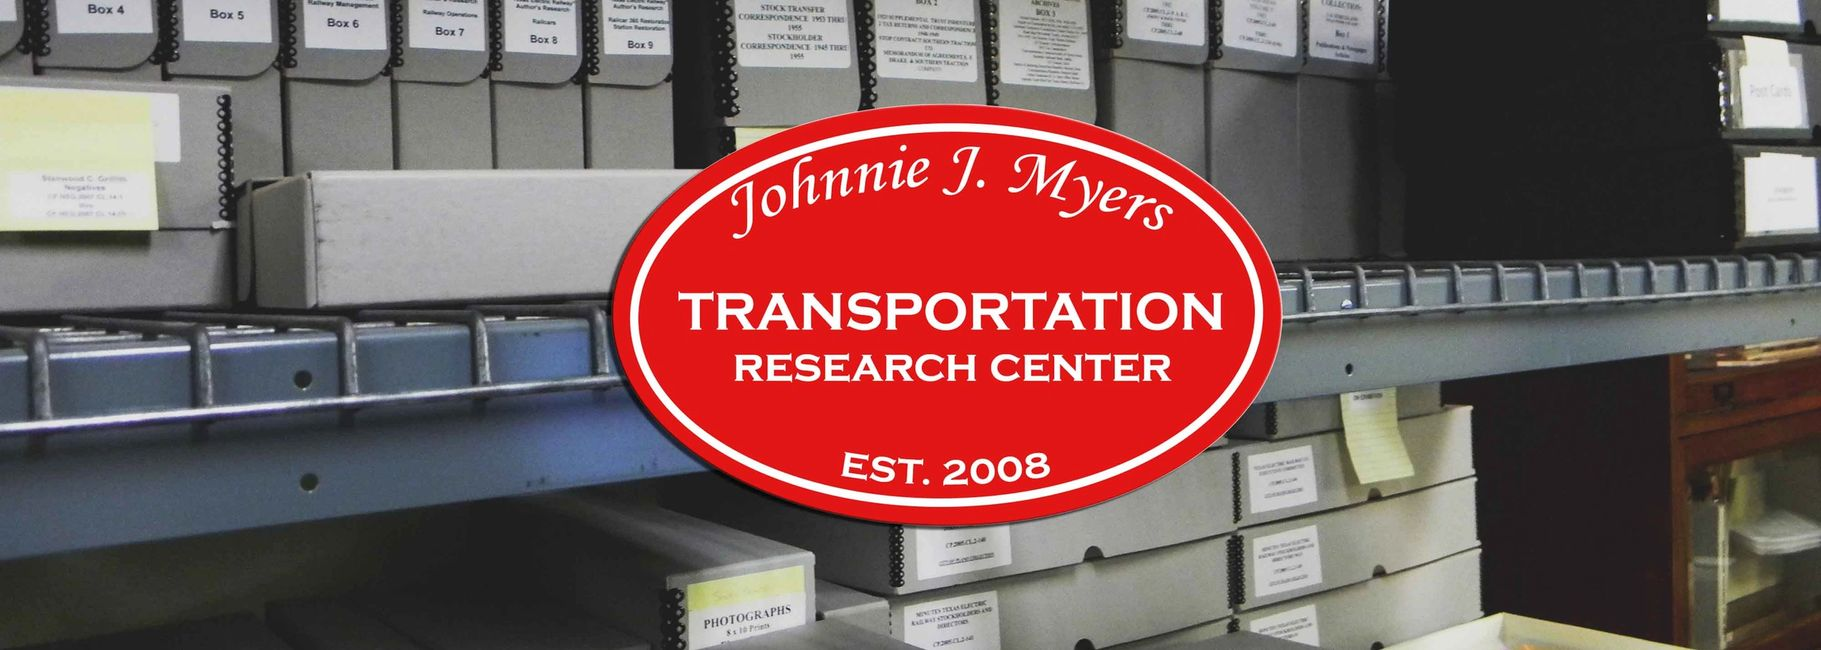 The Johnnie J. Myers Transportation Research Center. Established in 2008.